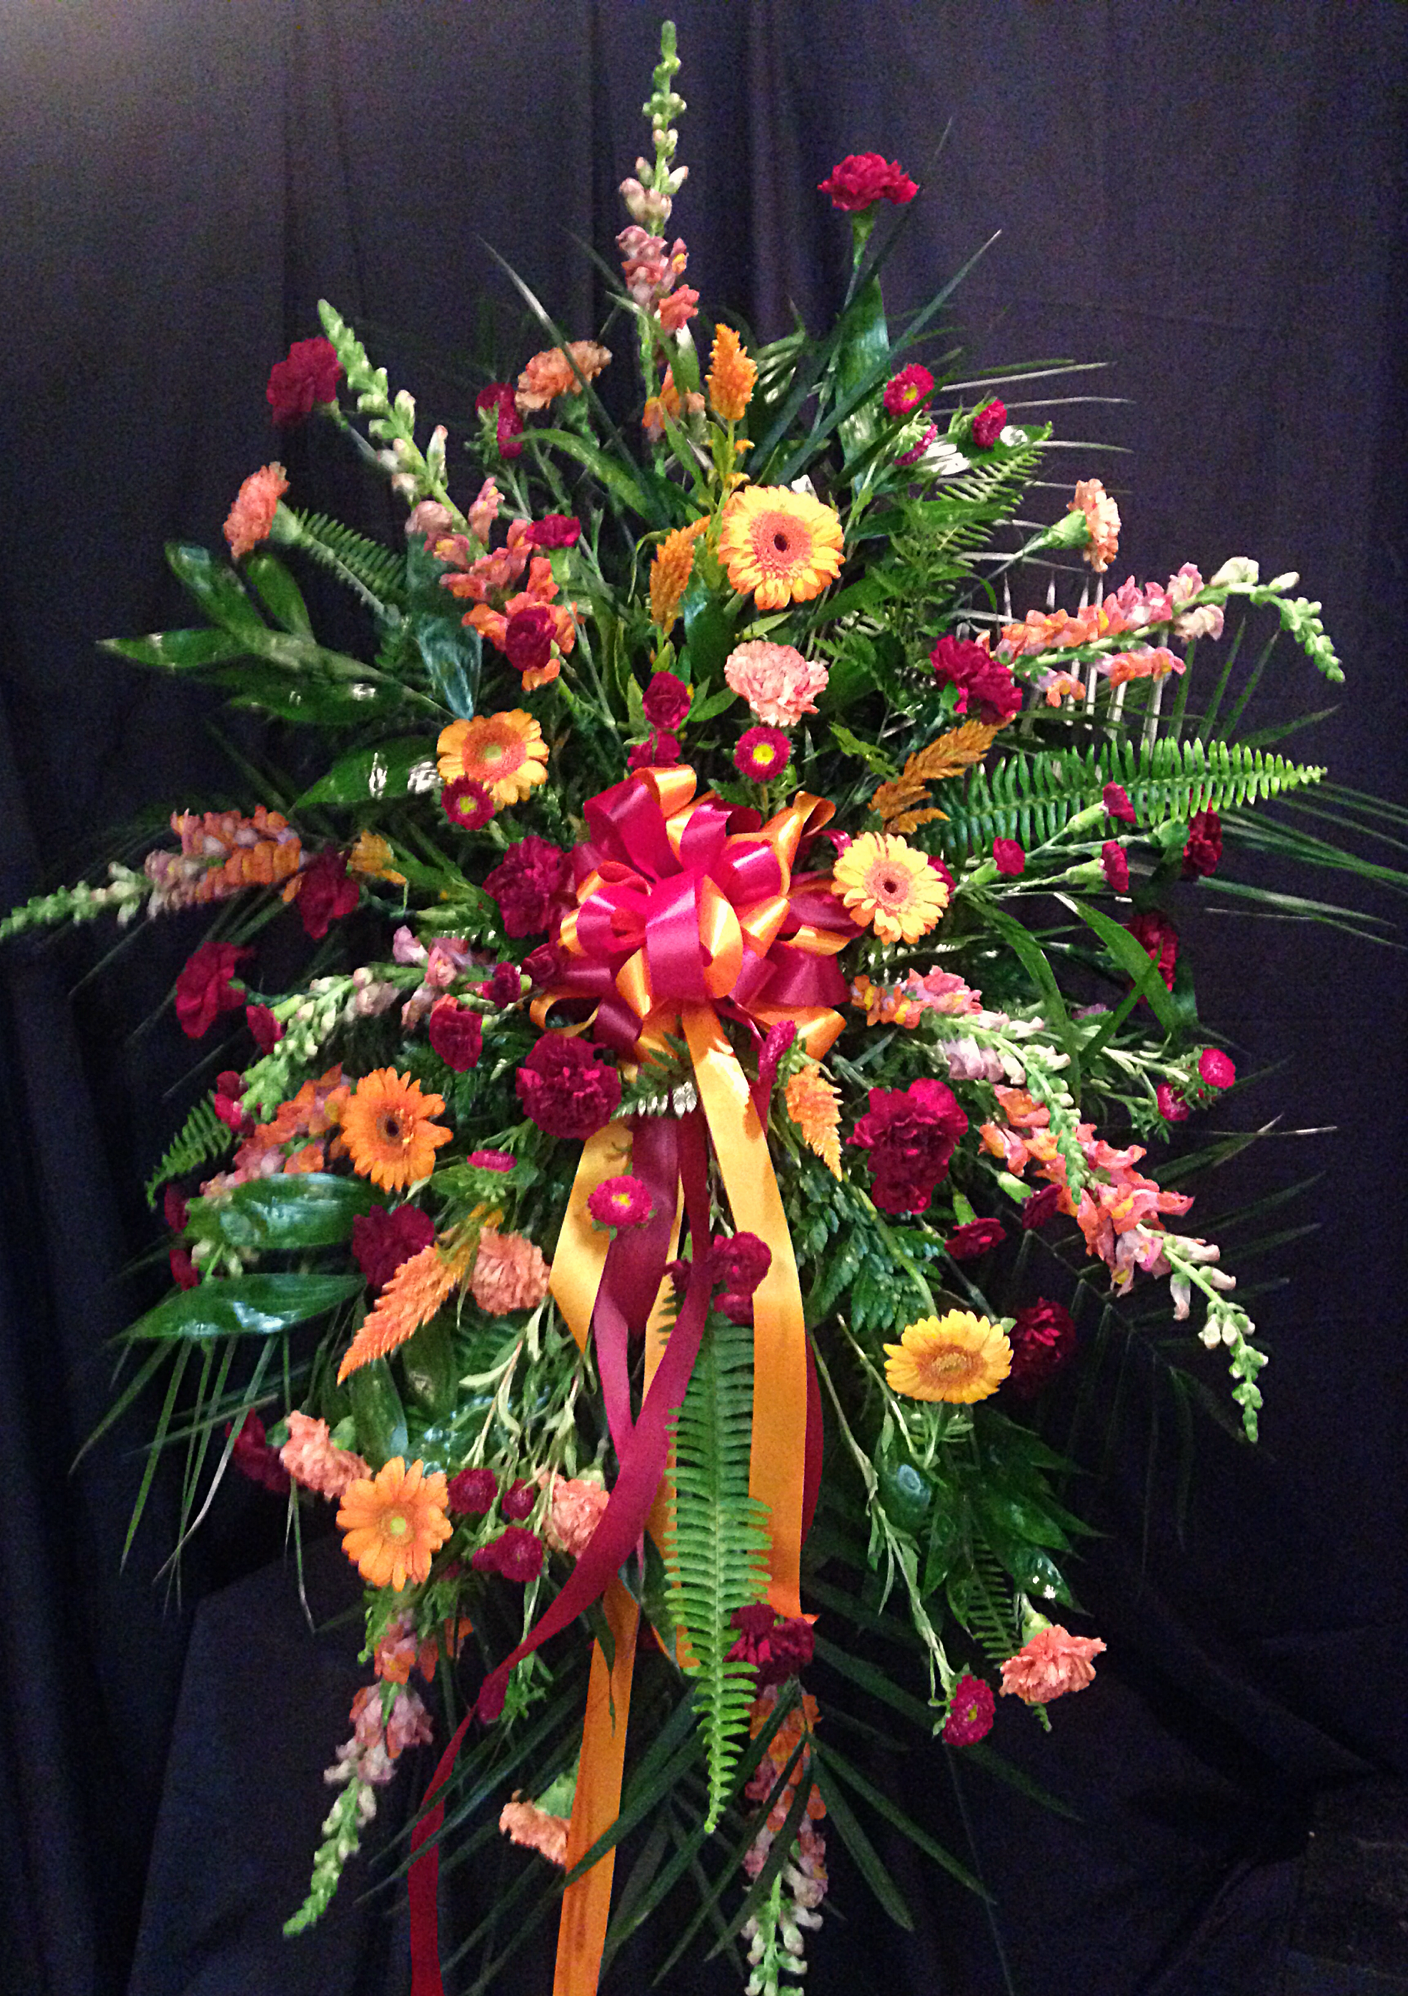 Virginia tech standing funeral spray with orange and maroon this is a funeral spray for a virginia tech fan that includes burgundy and orange carnations izmirmasajfo